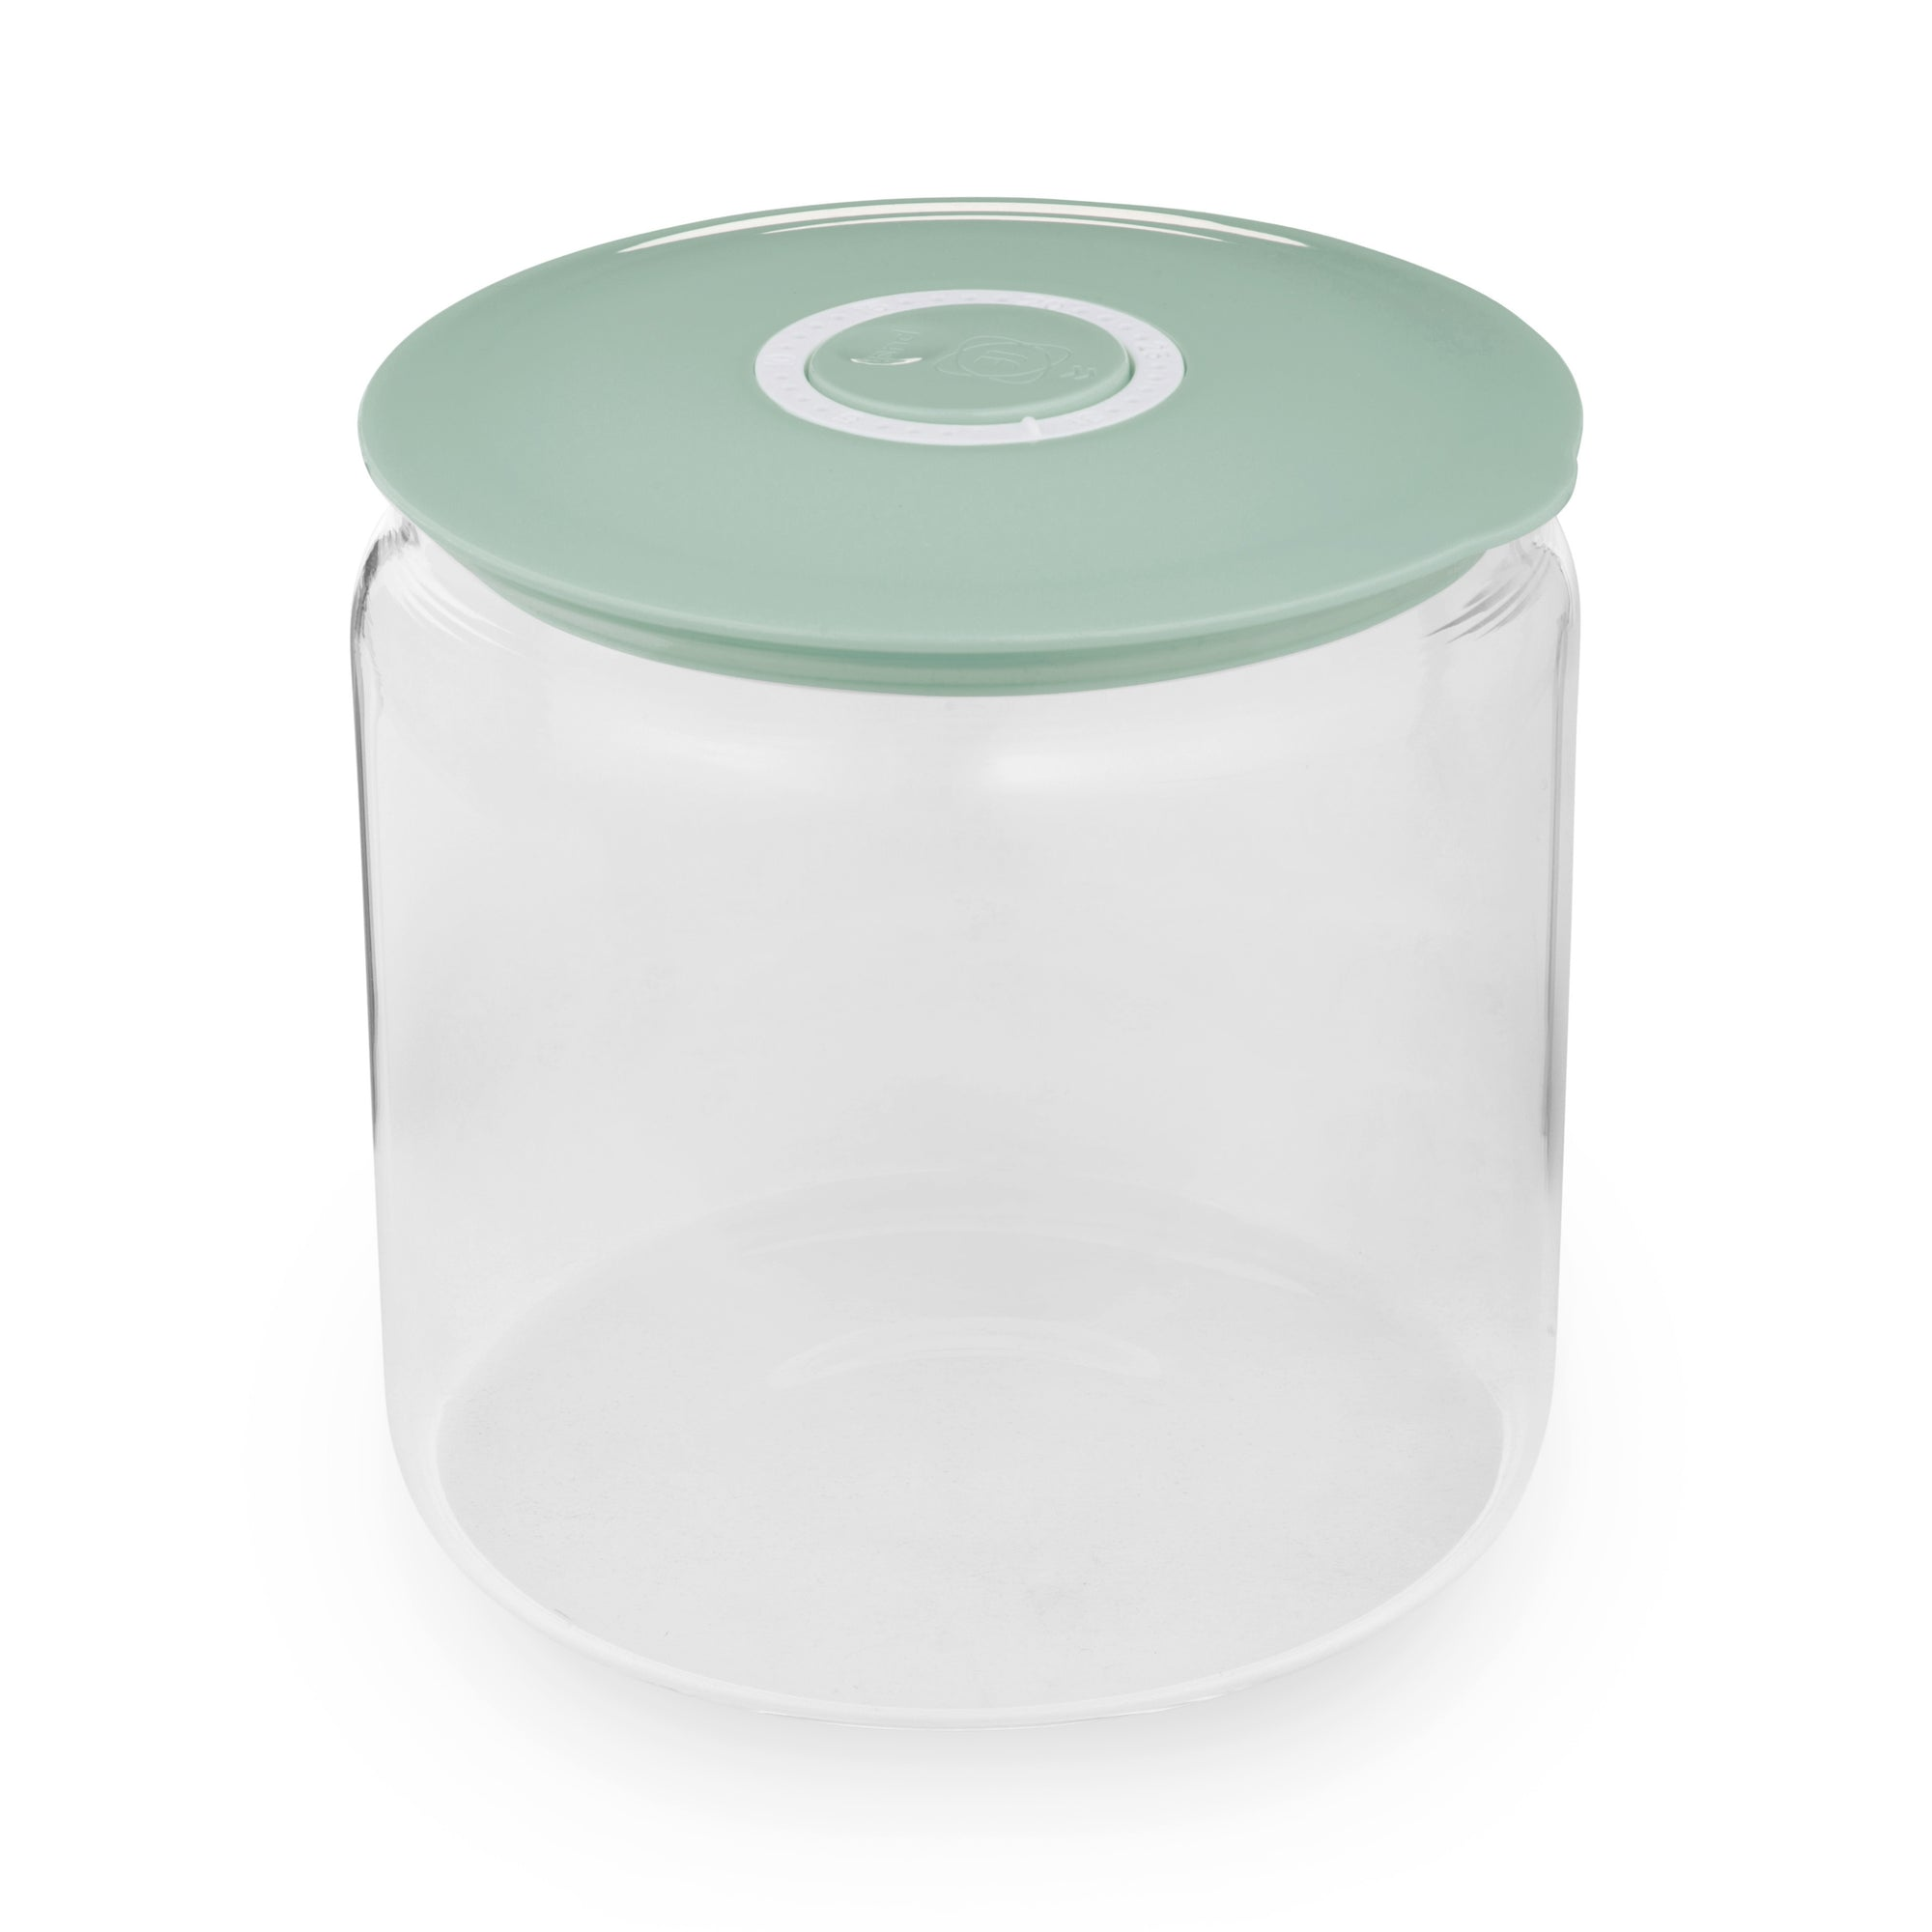 Luvele 2 Litre Glass Yoghurt Container | Compatible with Pure Plus Yoghurt Maker